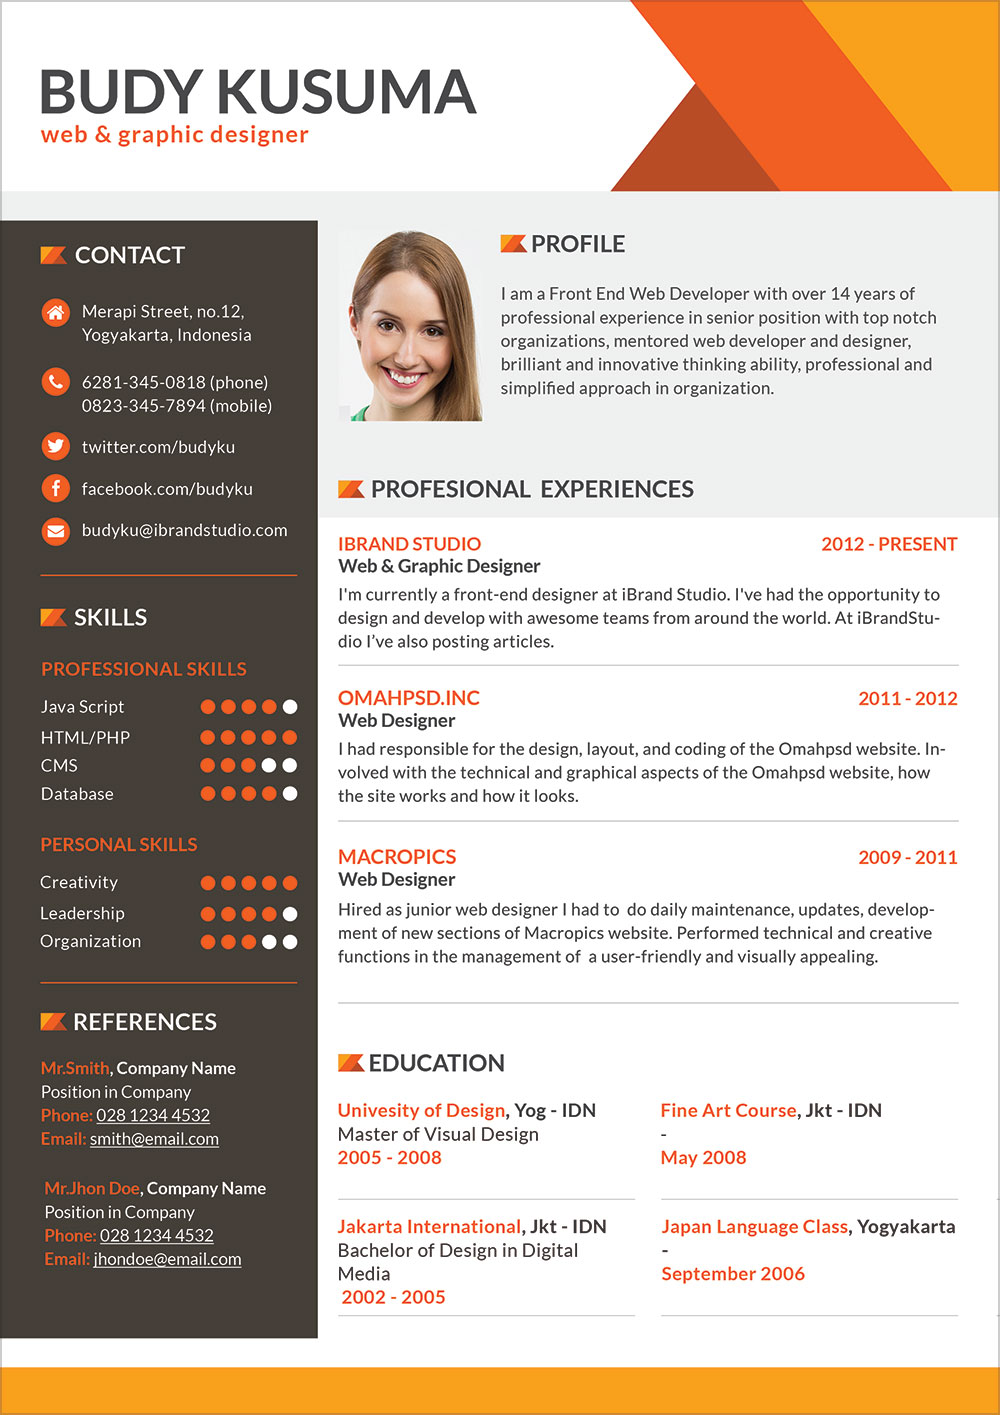 Free-Professional-Resume-Design-Templates-in-Photoshop-PSD-Format-3